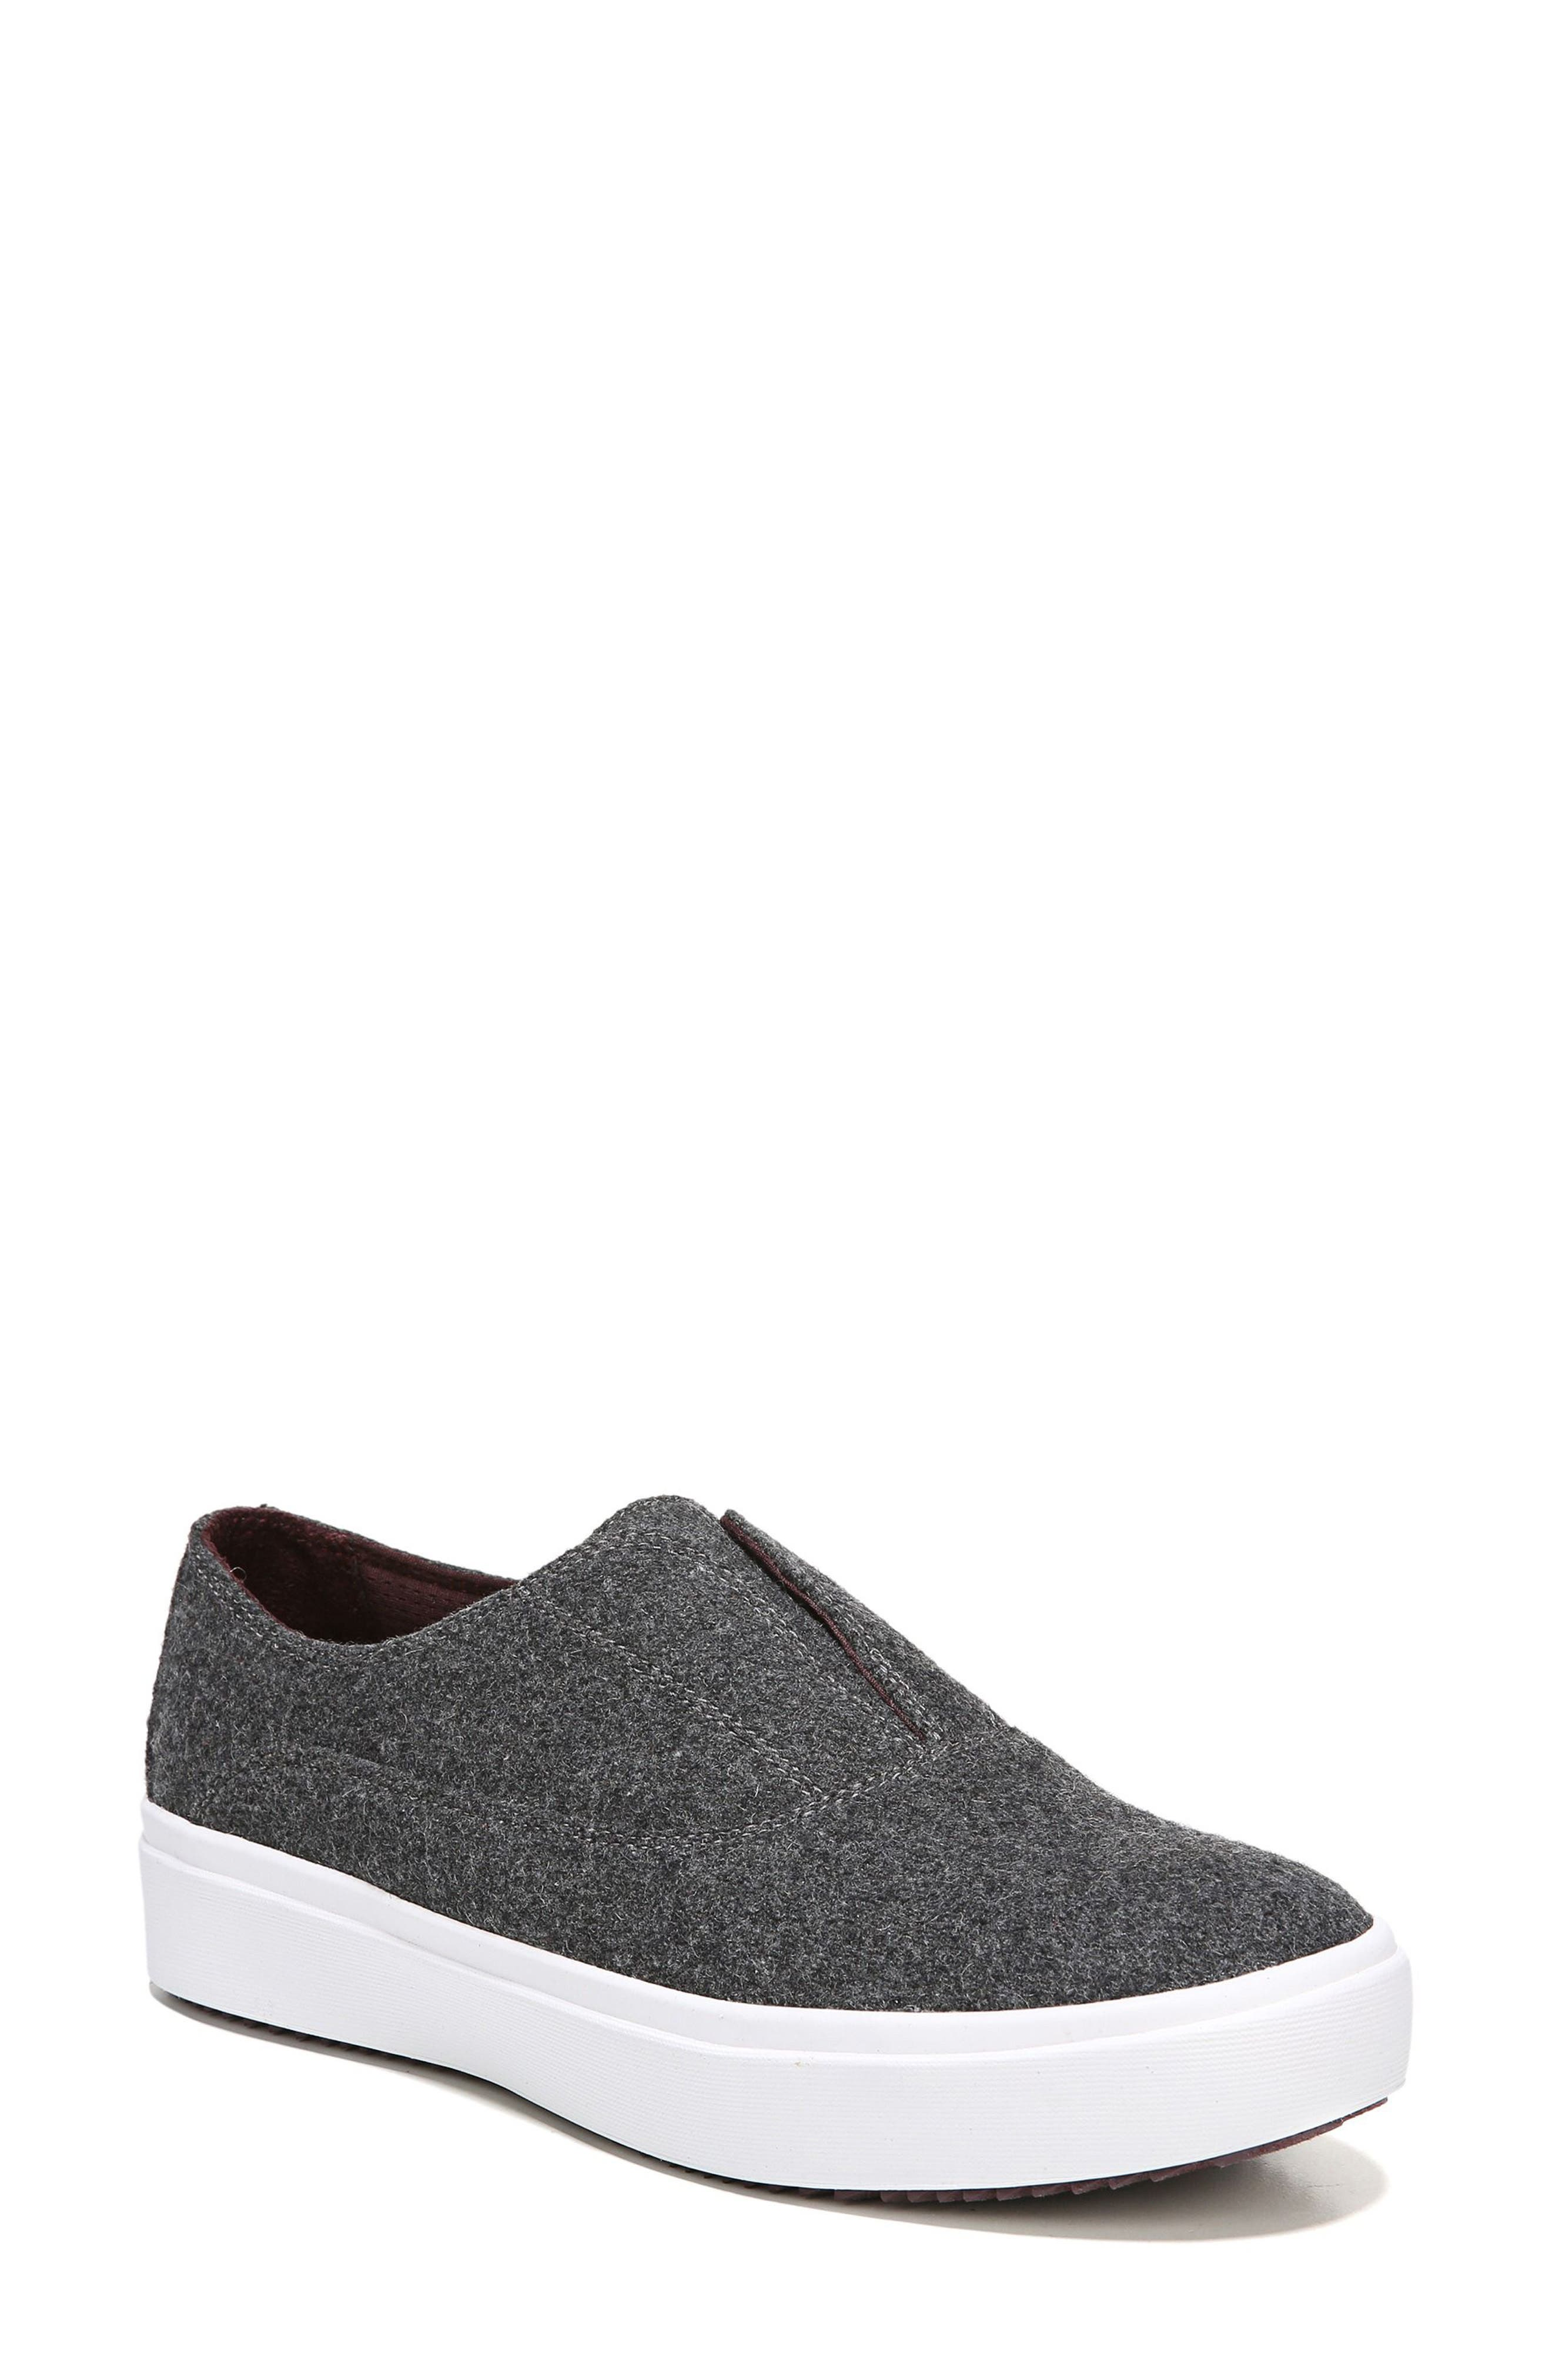 Brey Slip-On Sneaker,                             Main thumbnail 1, color,                             Charcoal Fabric